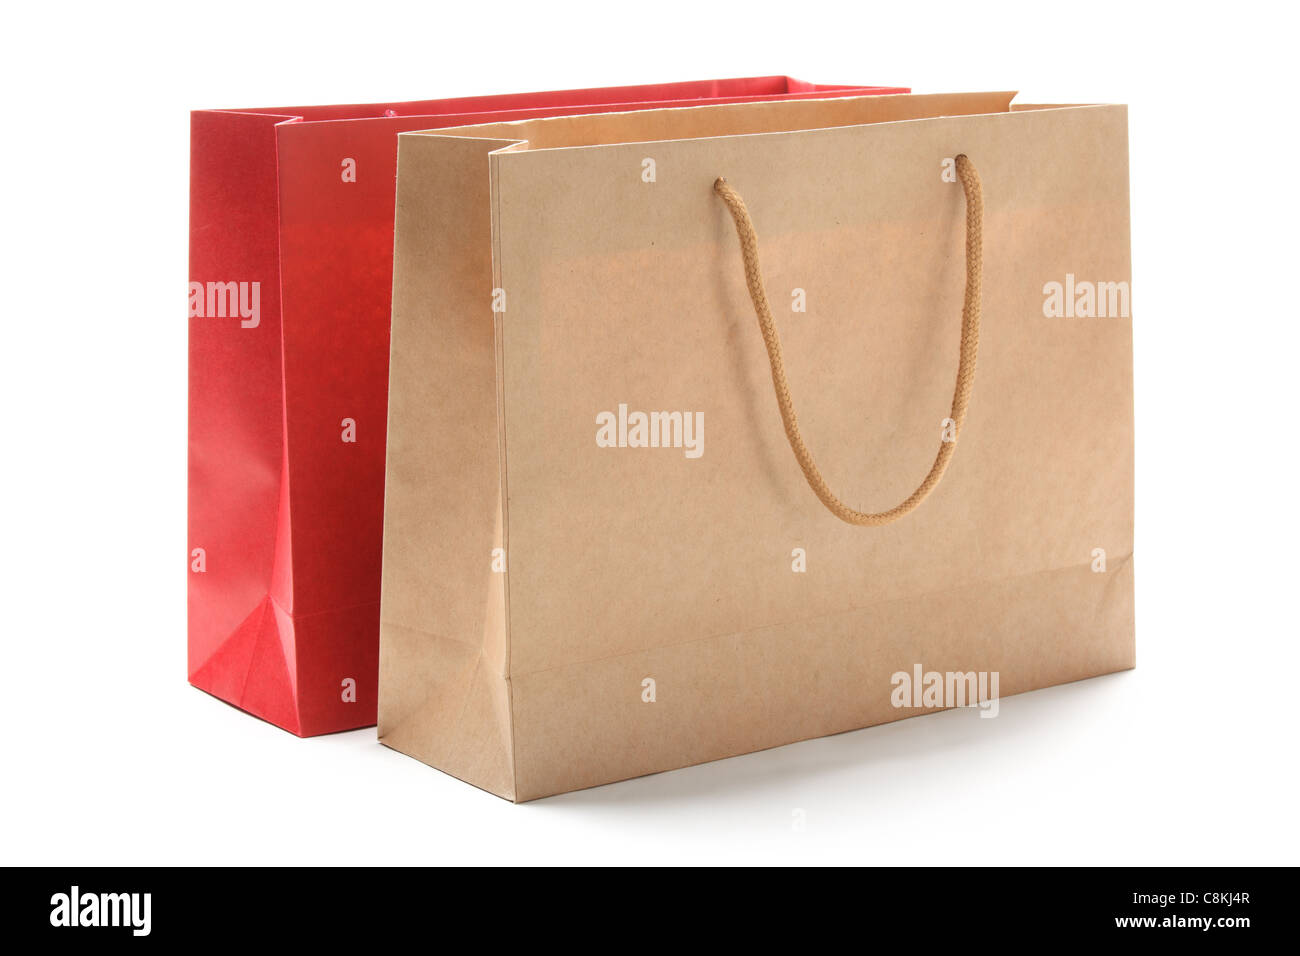 Paper bags isolated on white. - Stock Image